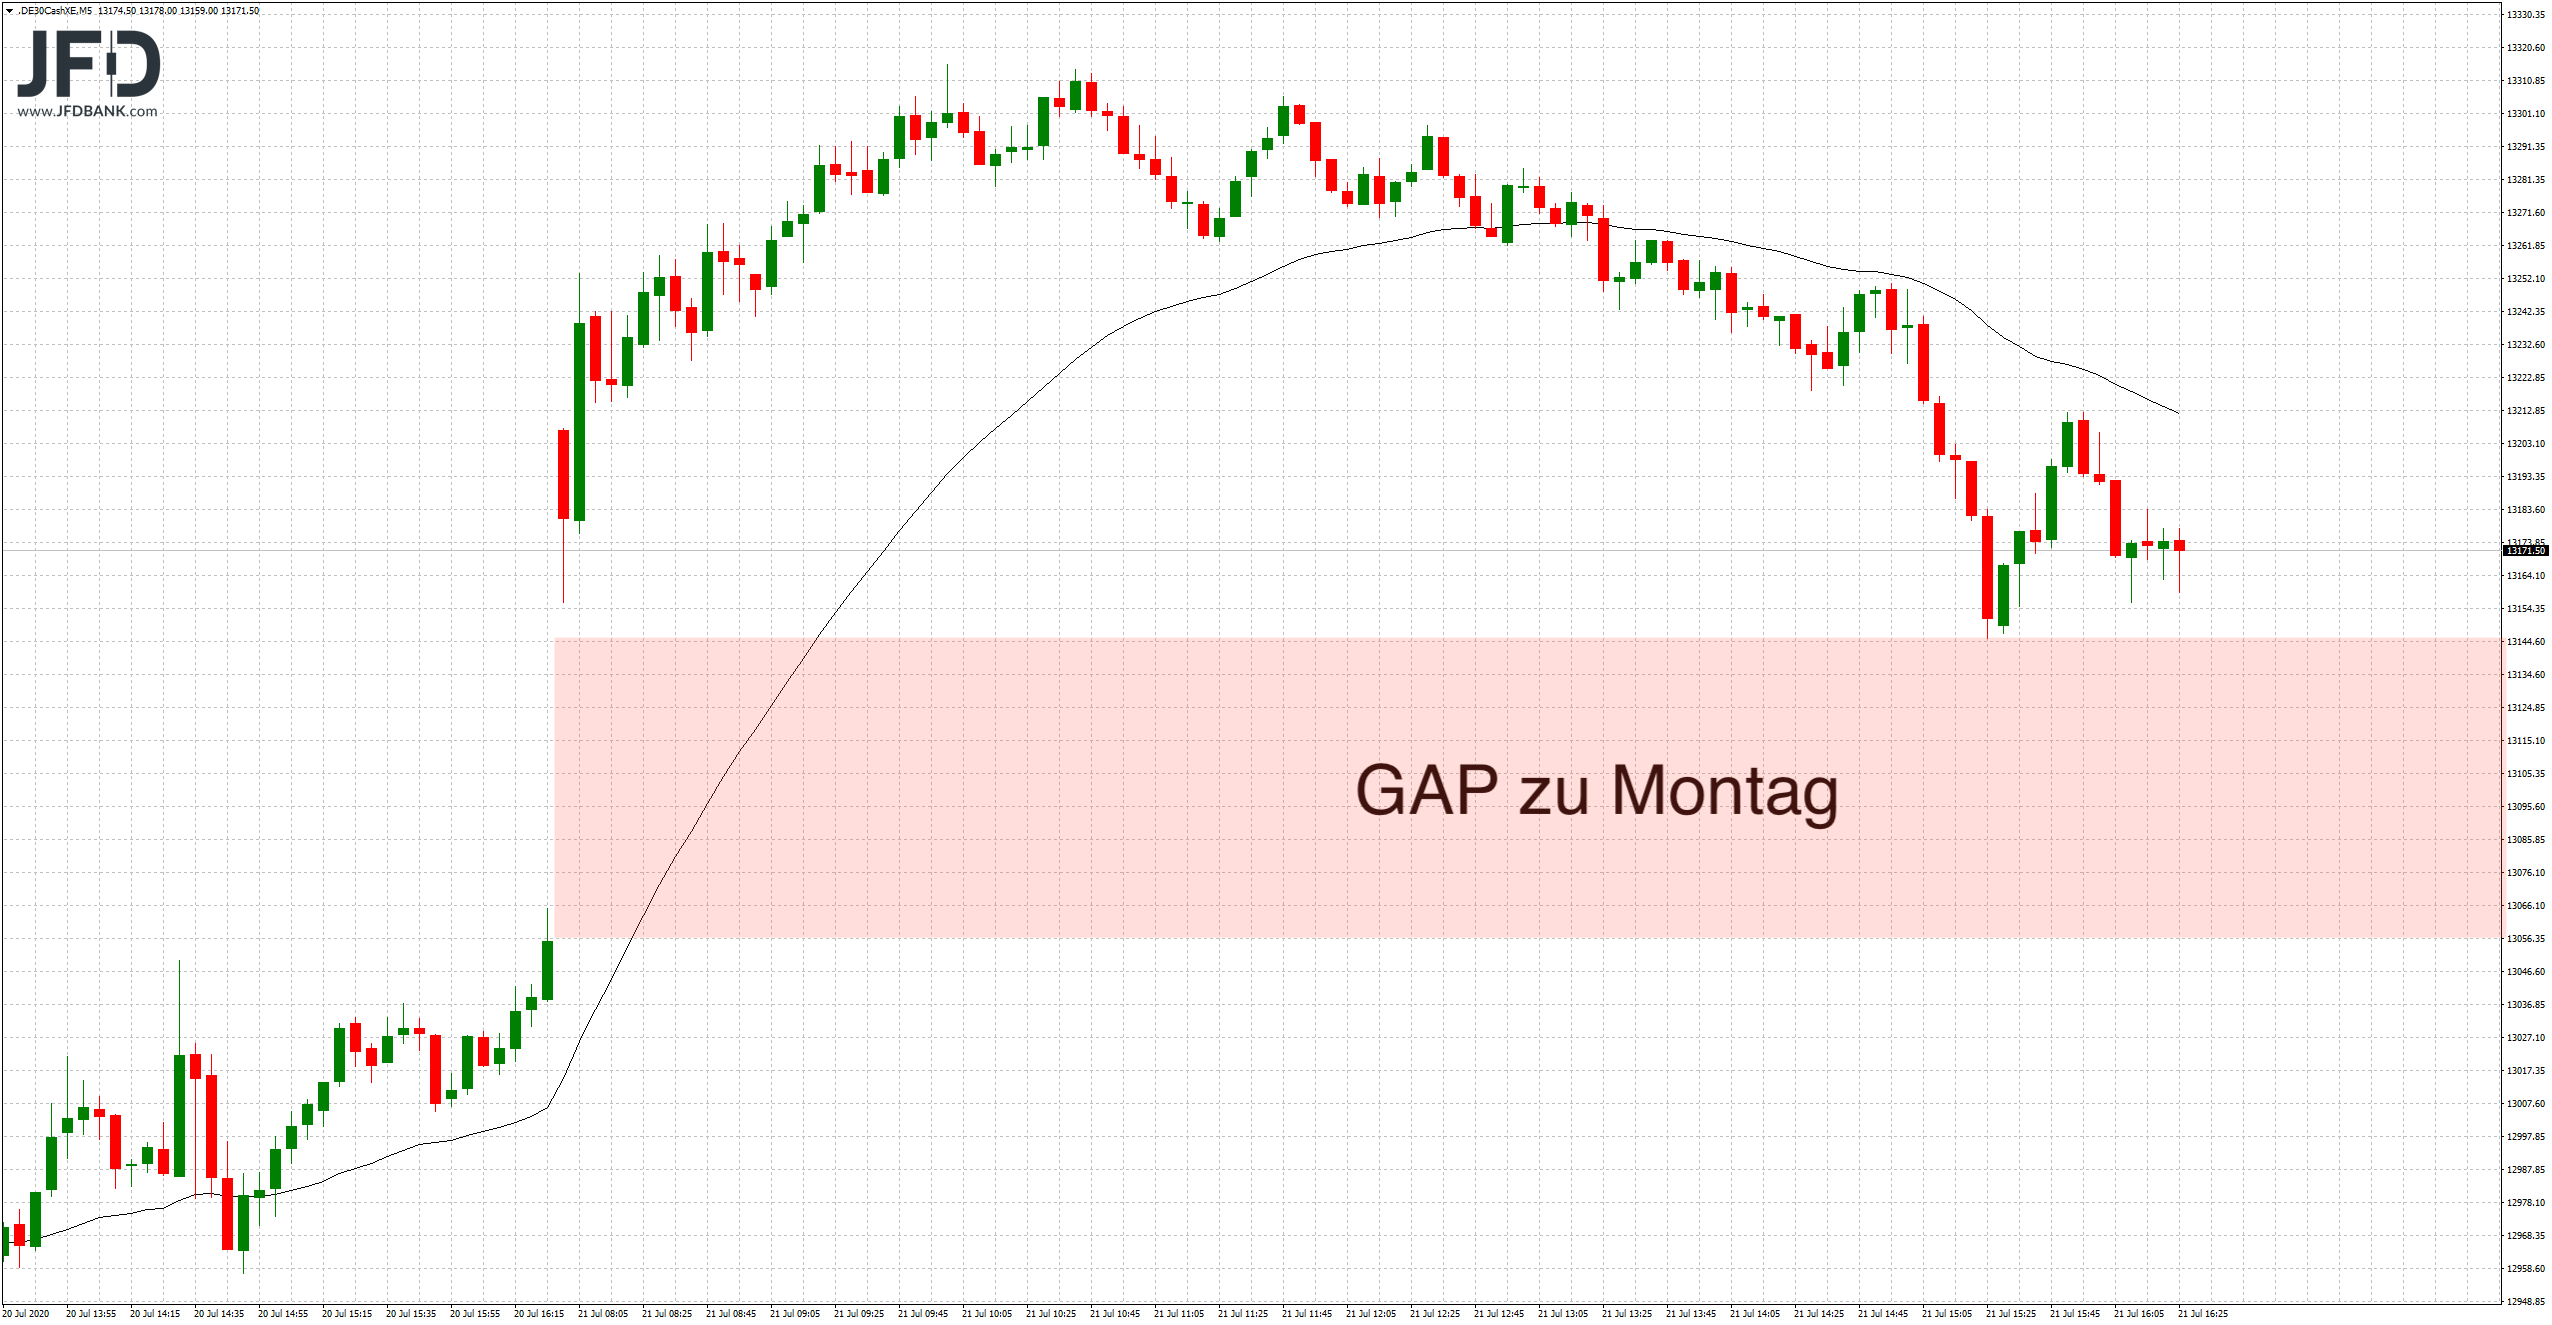 DAX-GAP am Vortag